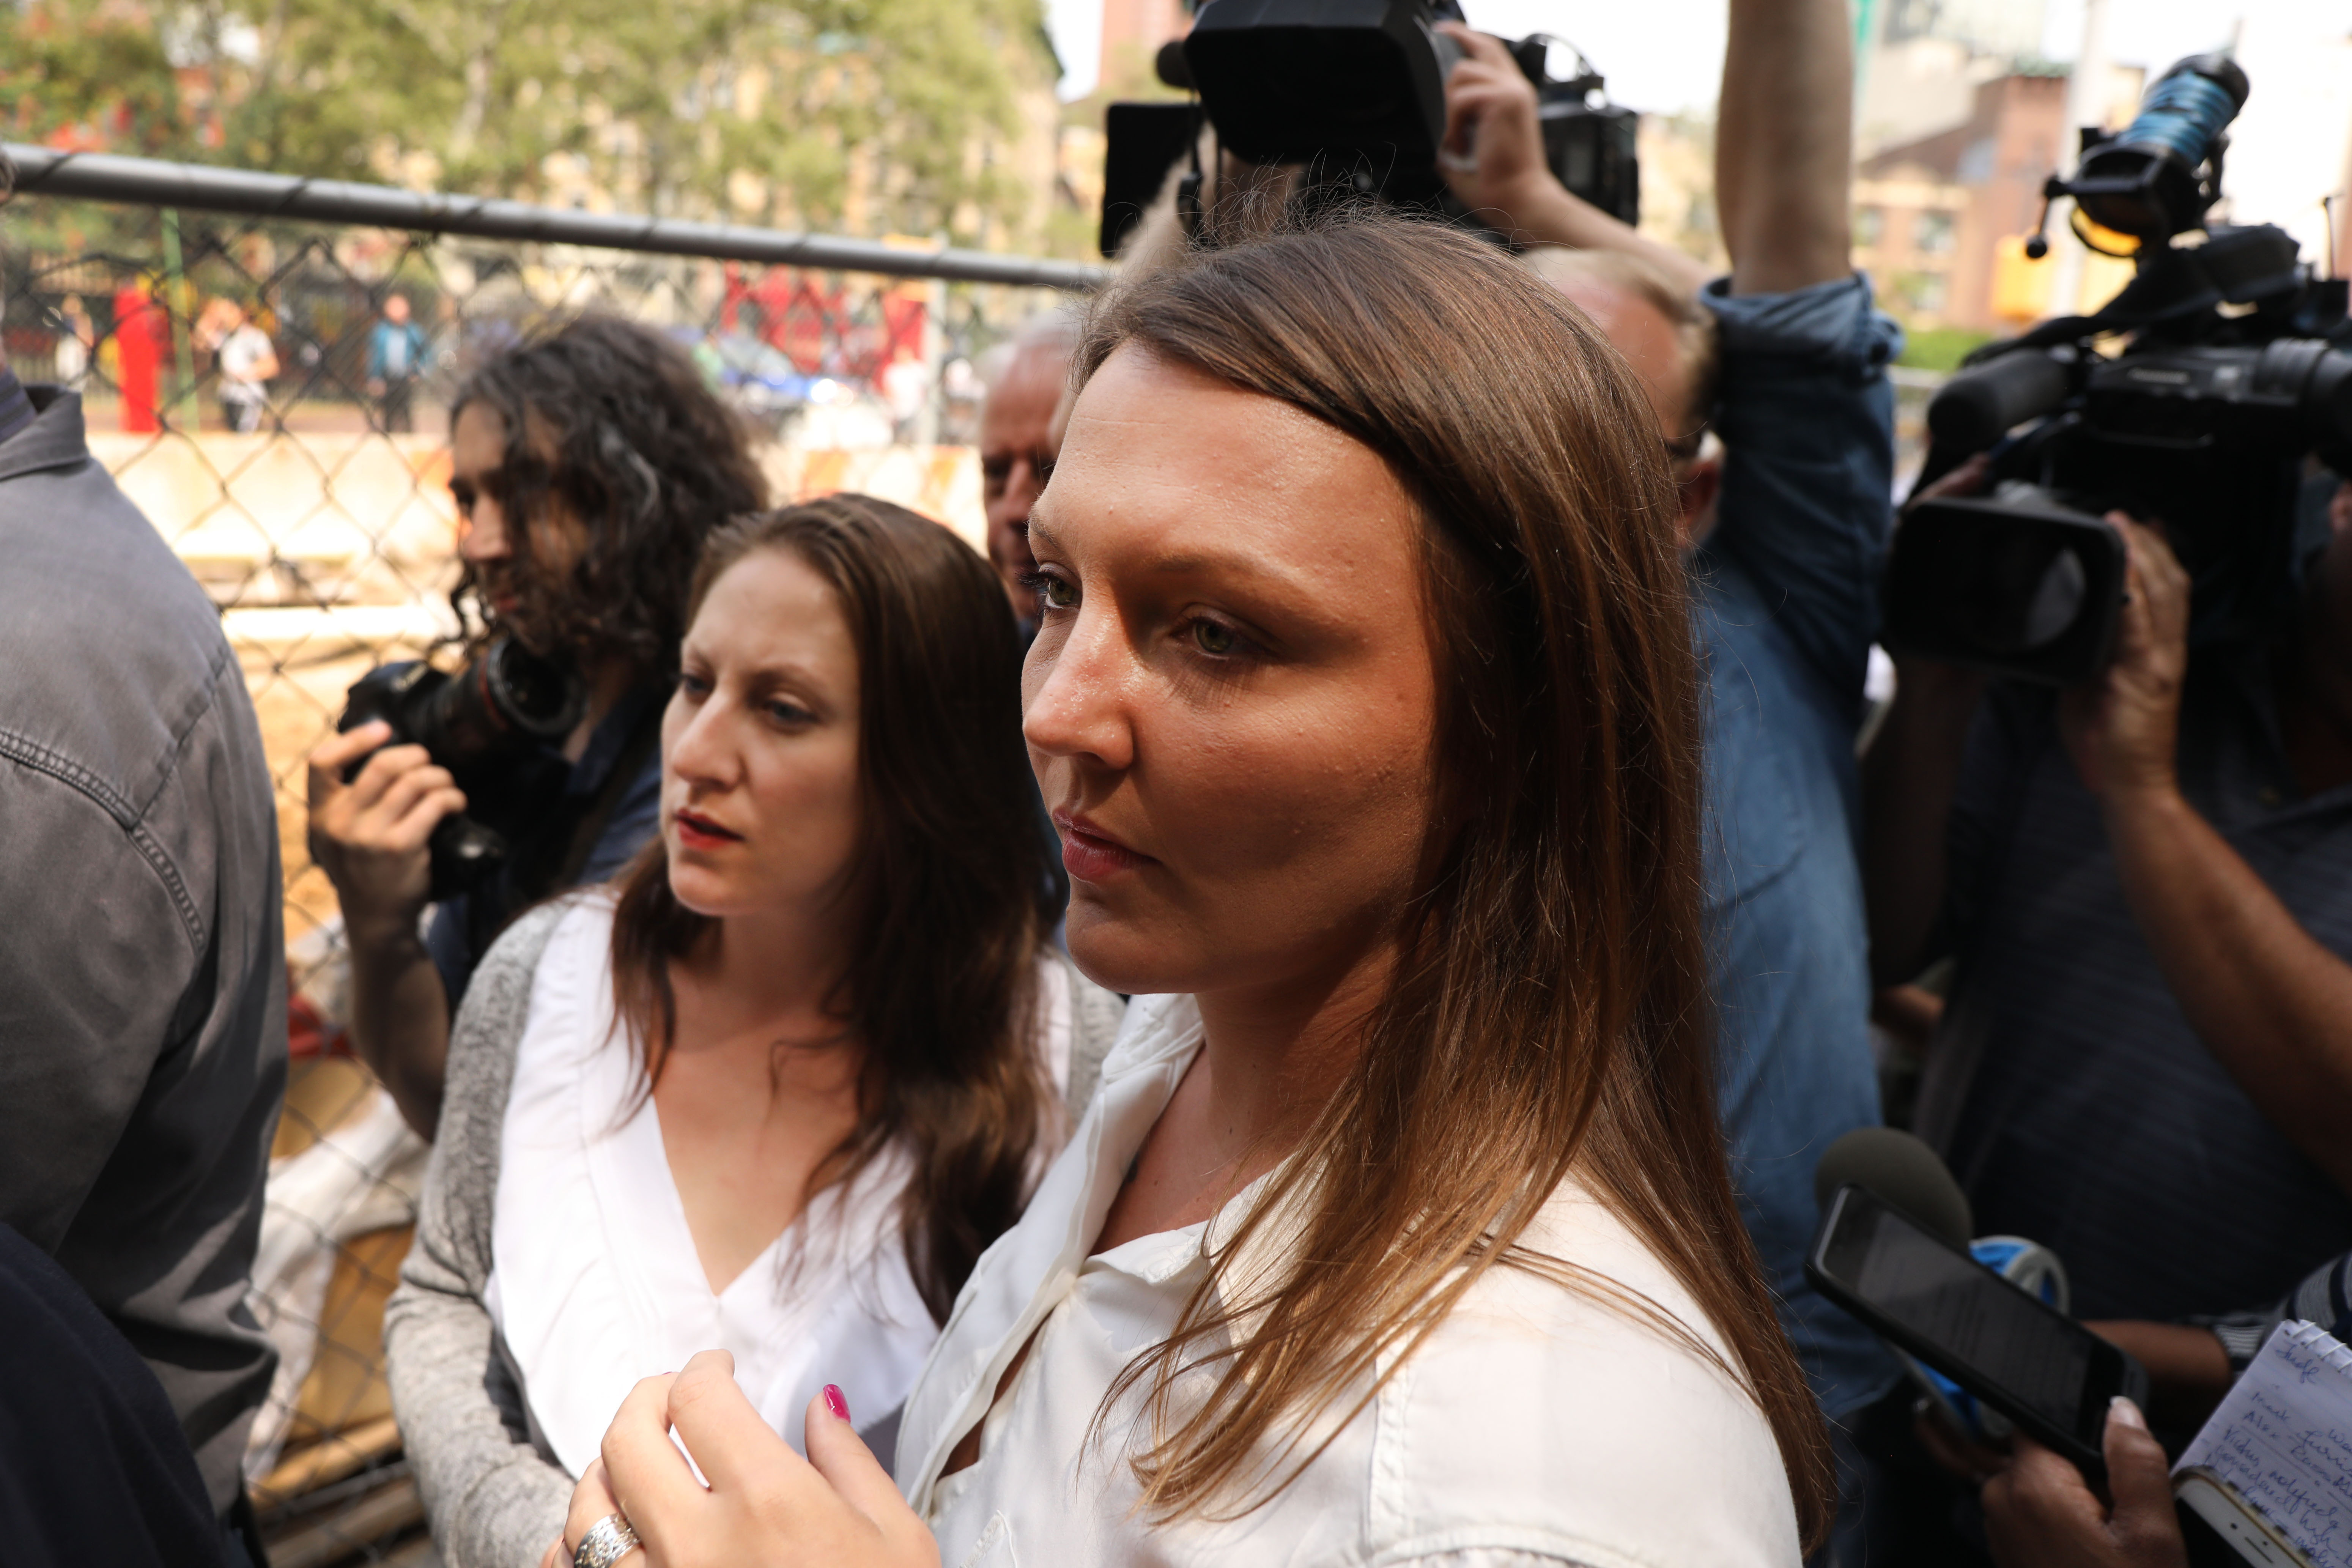 Michelle Licata (left) and Courtney Wild, two women who say Jeffrey Epstein abused them, stand surrounded by cameras and reporters outside a Manhattan courthouse after a hearing on sex trafficking charges against Epstein.